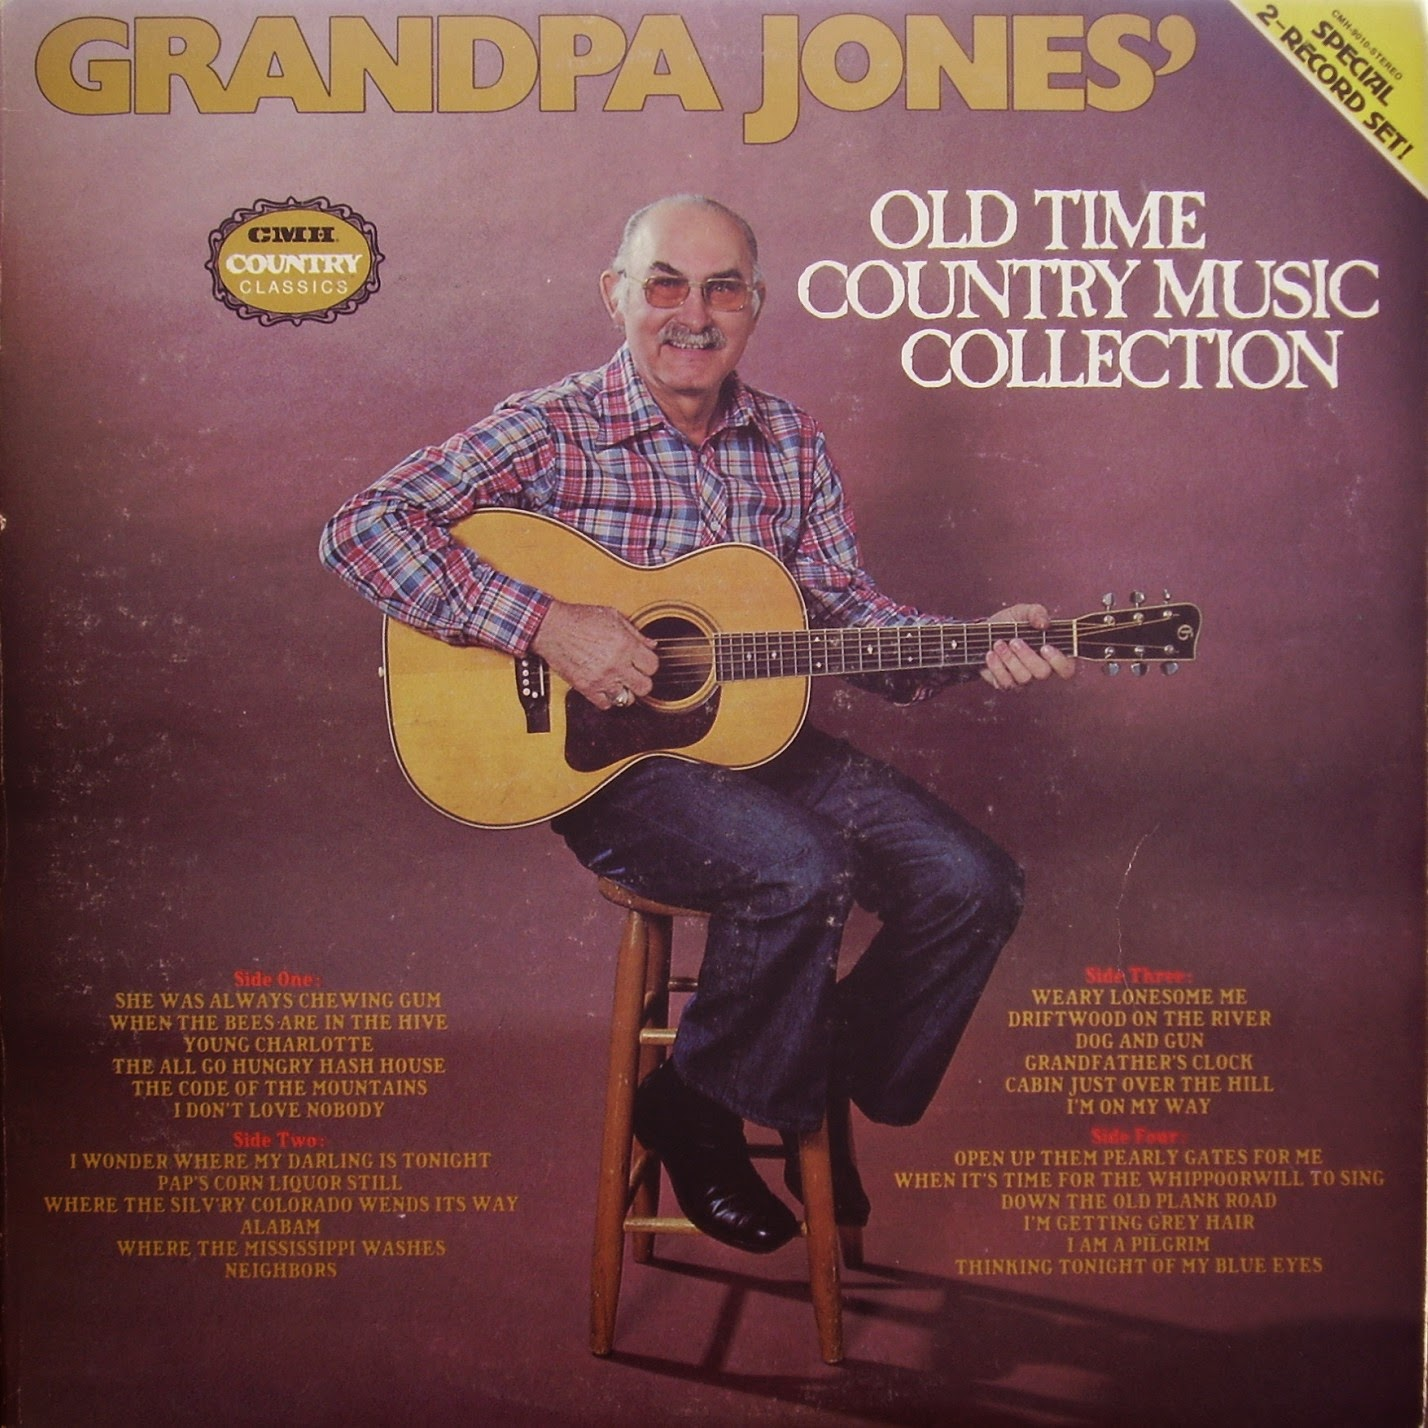 el Rancho: Old Time Country Music Collection - Grandpa Jones (1978)